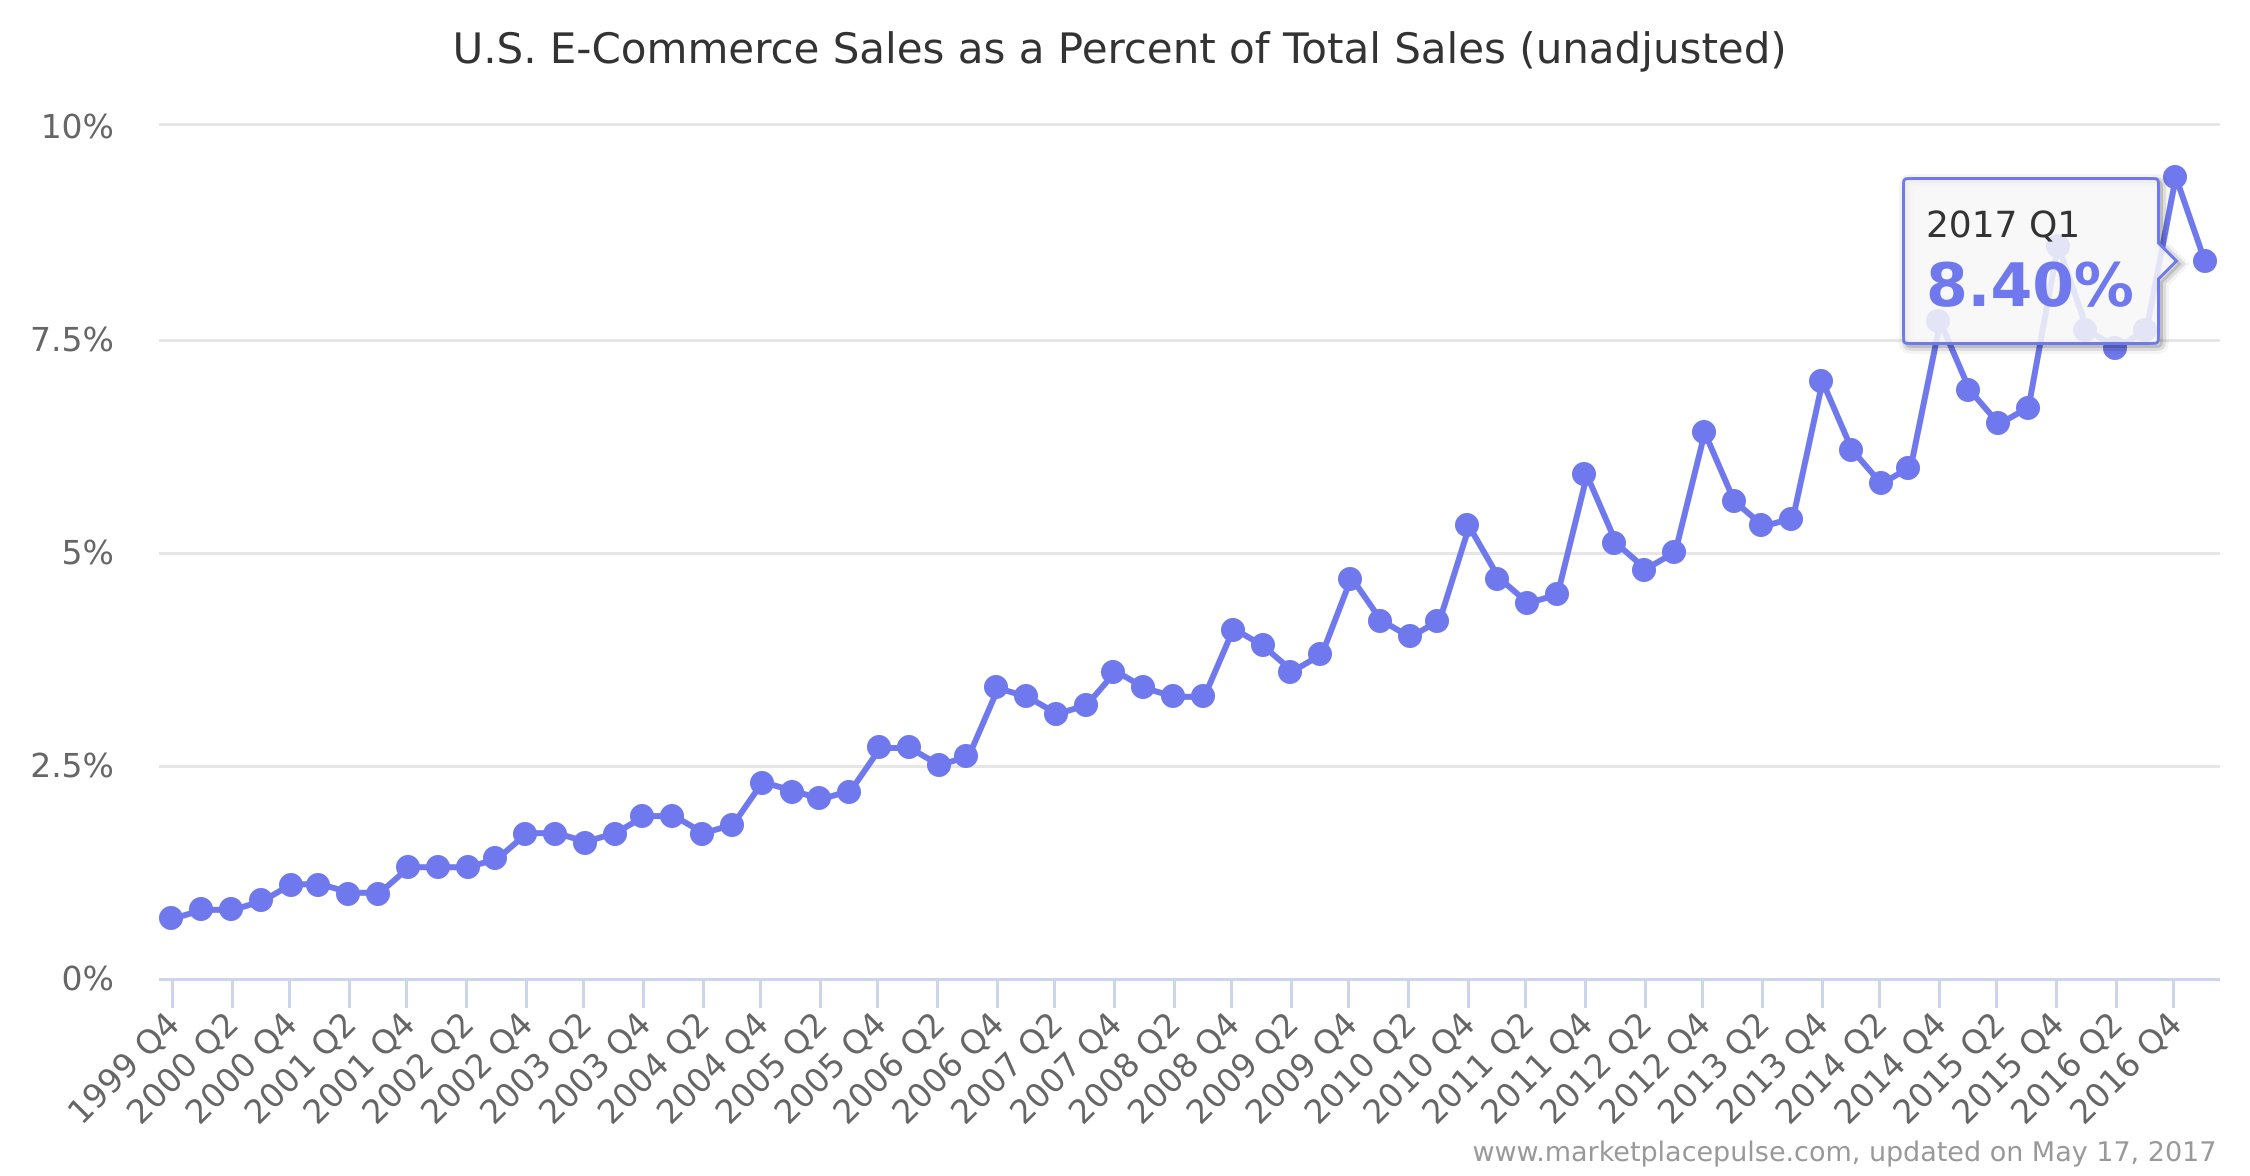 US e-commerce sales as a percent of total sales